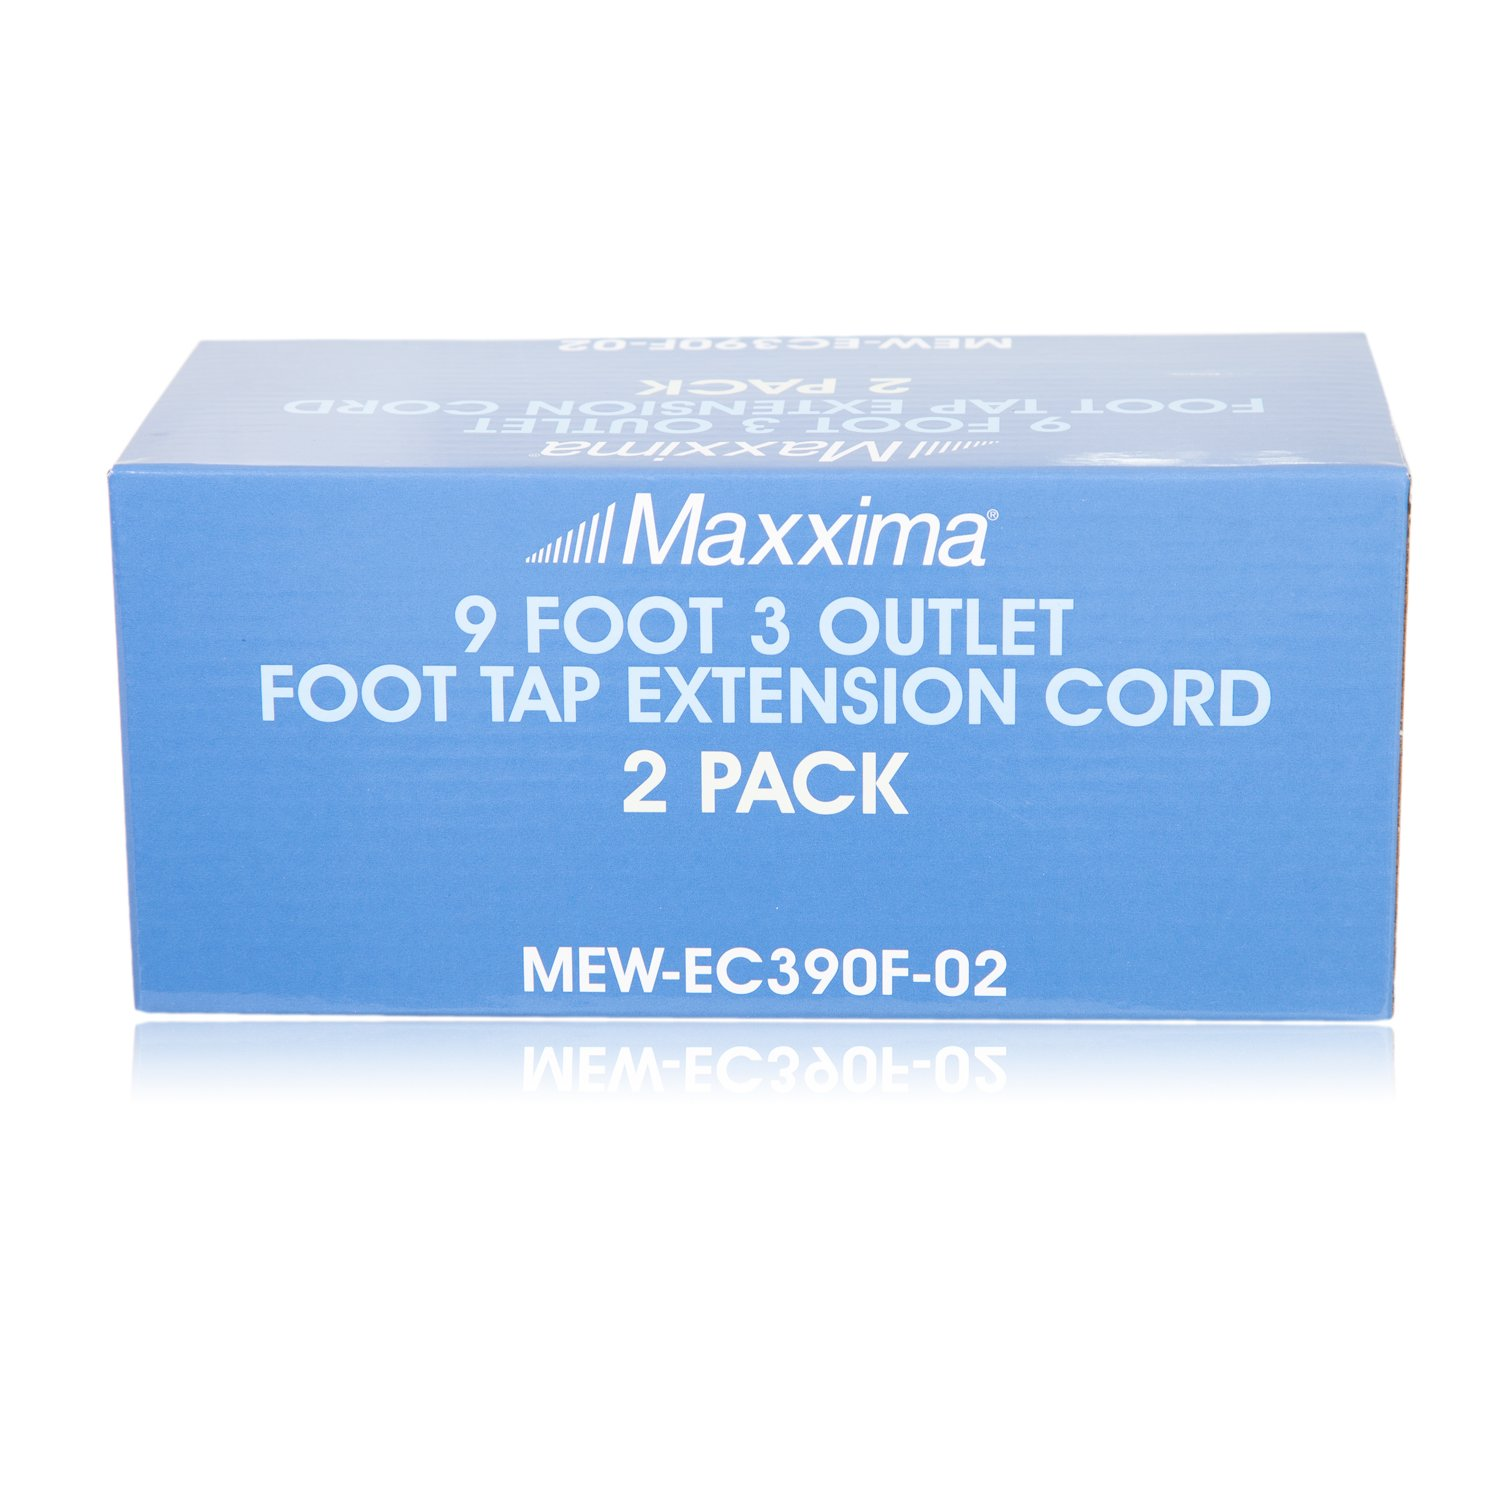 Pack of 2 Maxxima 9 Foot 3 Outlet Foot Tap Extension Cord MEW-EC390F-02